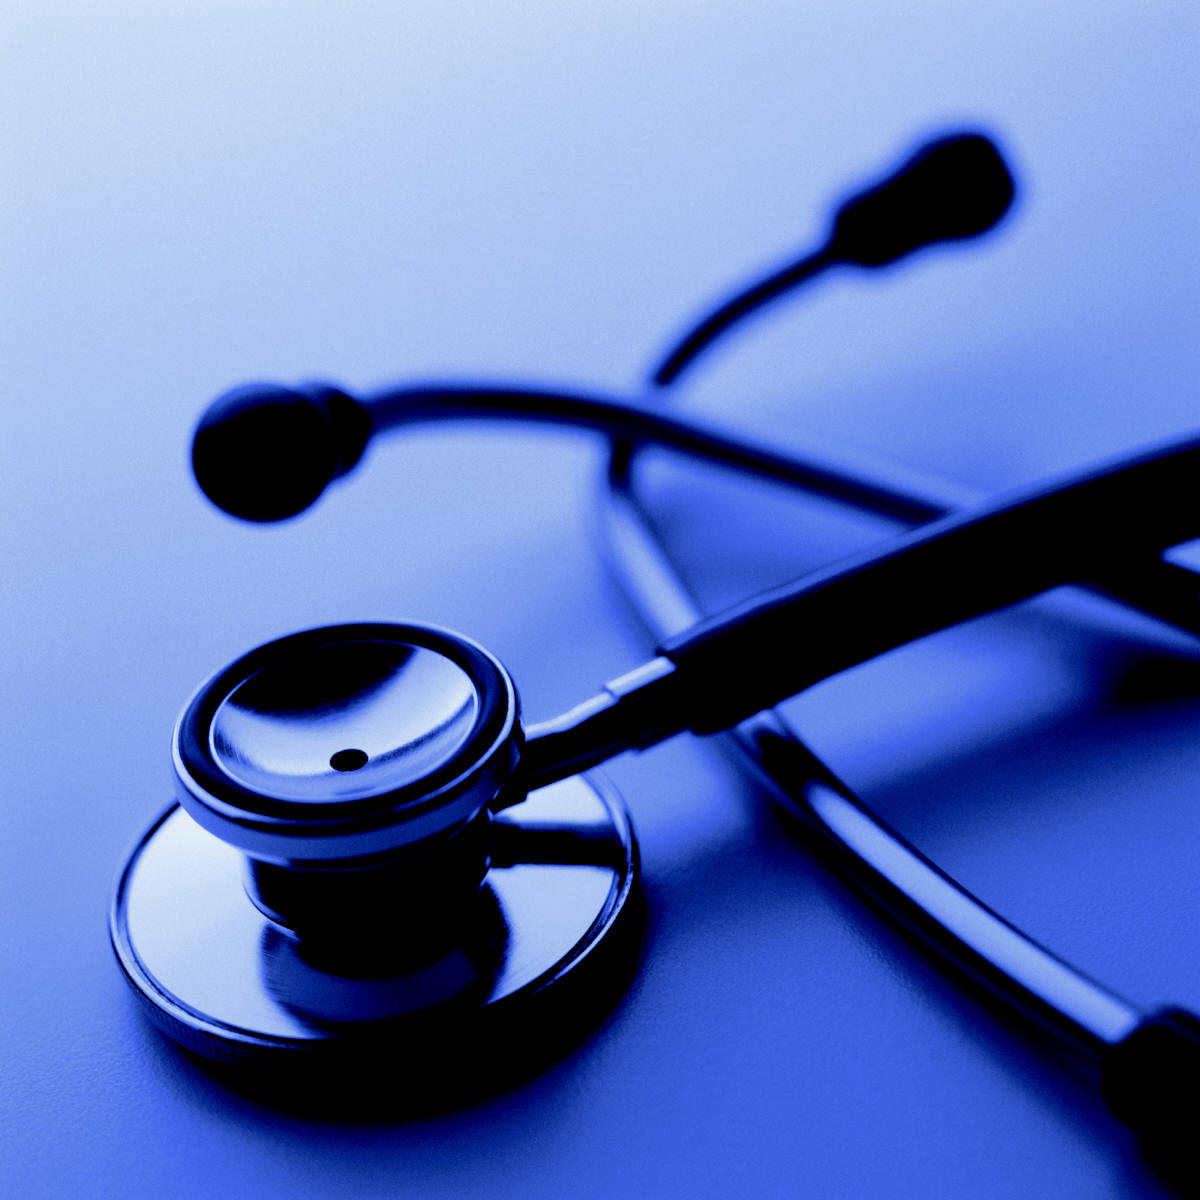 Medical Doctor Wallpaper: How The Doctor/Parent Relationship Can Impact Immunization